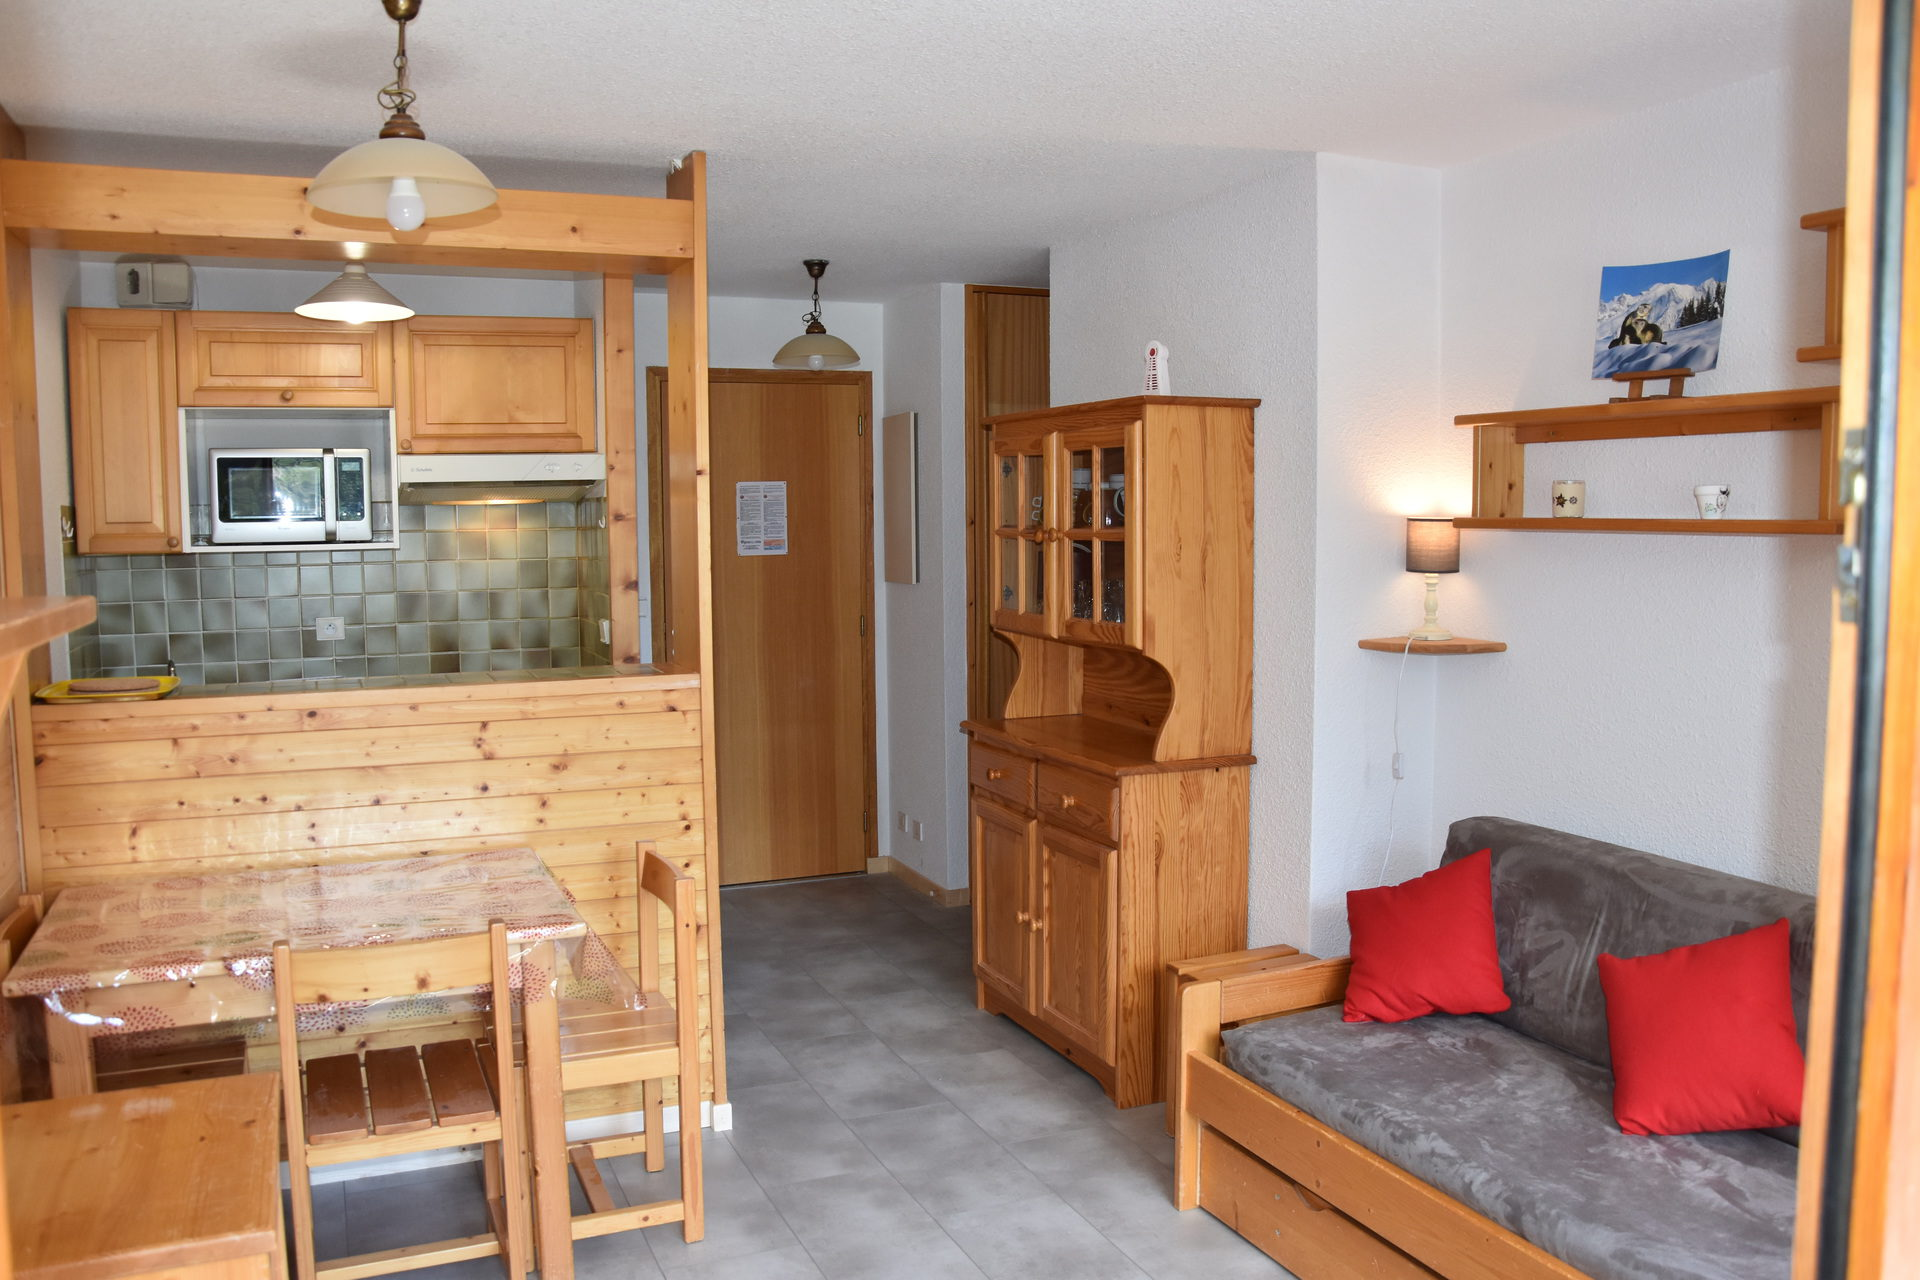 Rental reference : MURGER12 to Pralognan la Vanoise